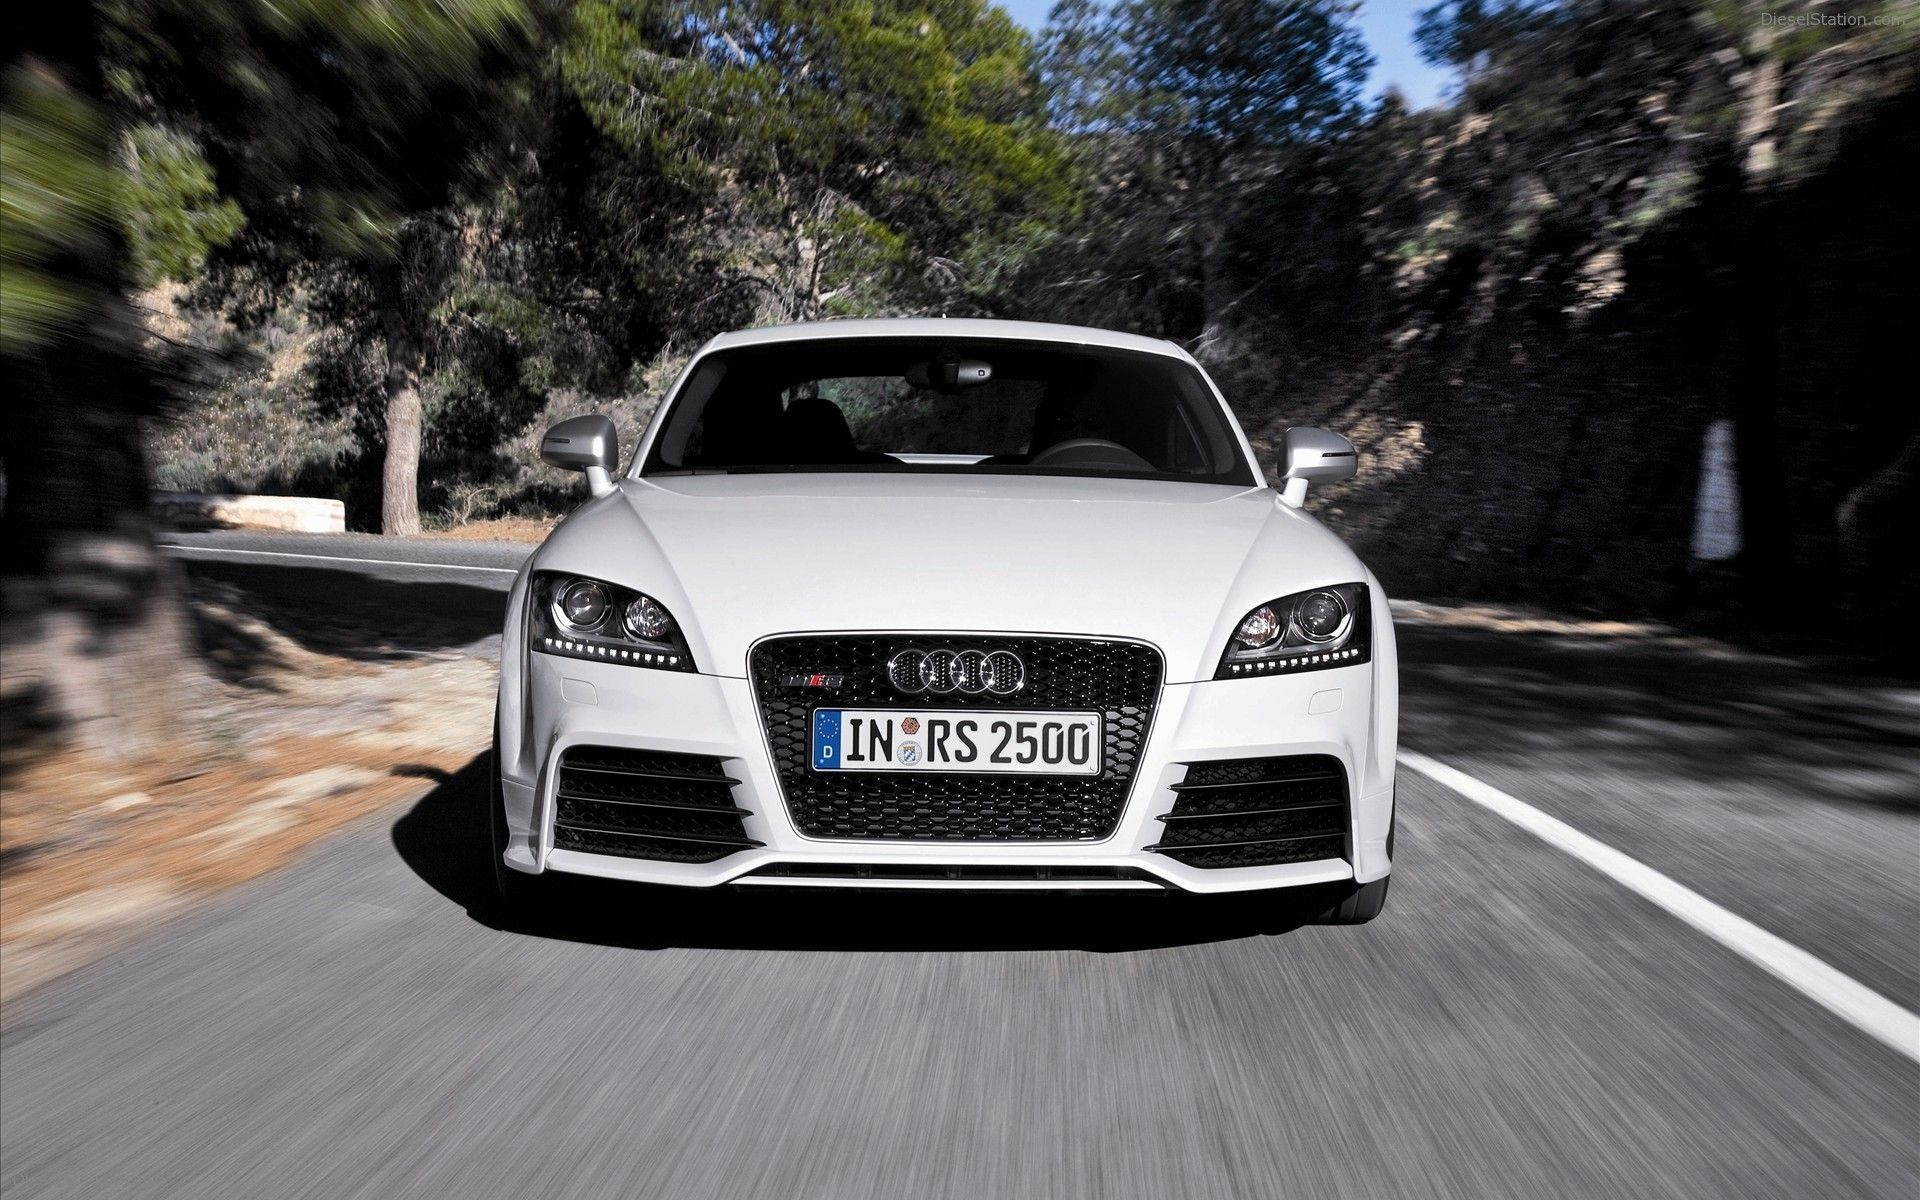 2010 Audi Tt Rs Coupe Wallpapers 2010 Audi Tt Rs Coupe Widescreen